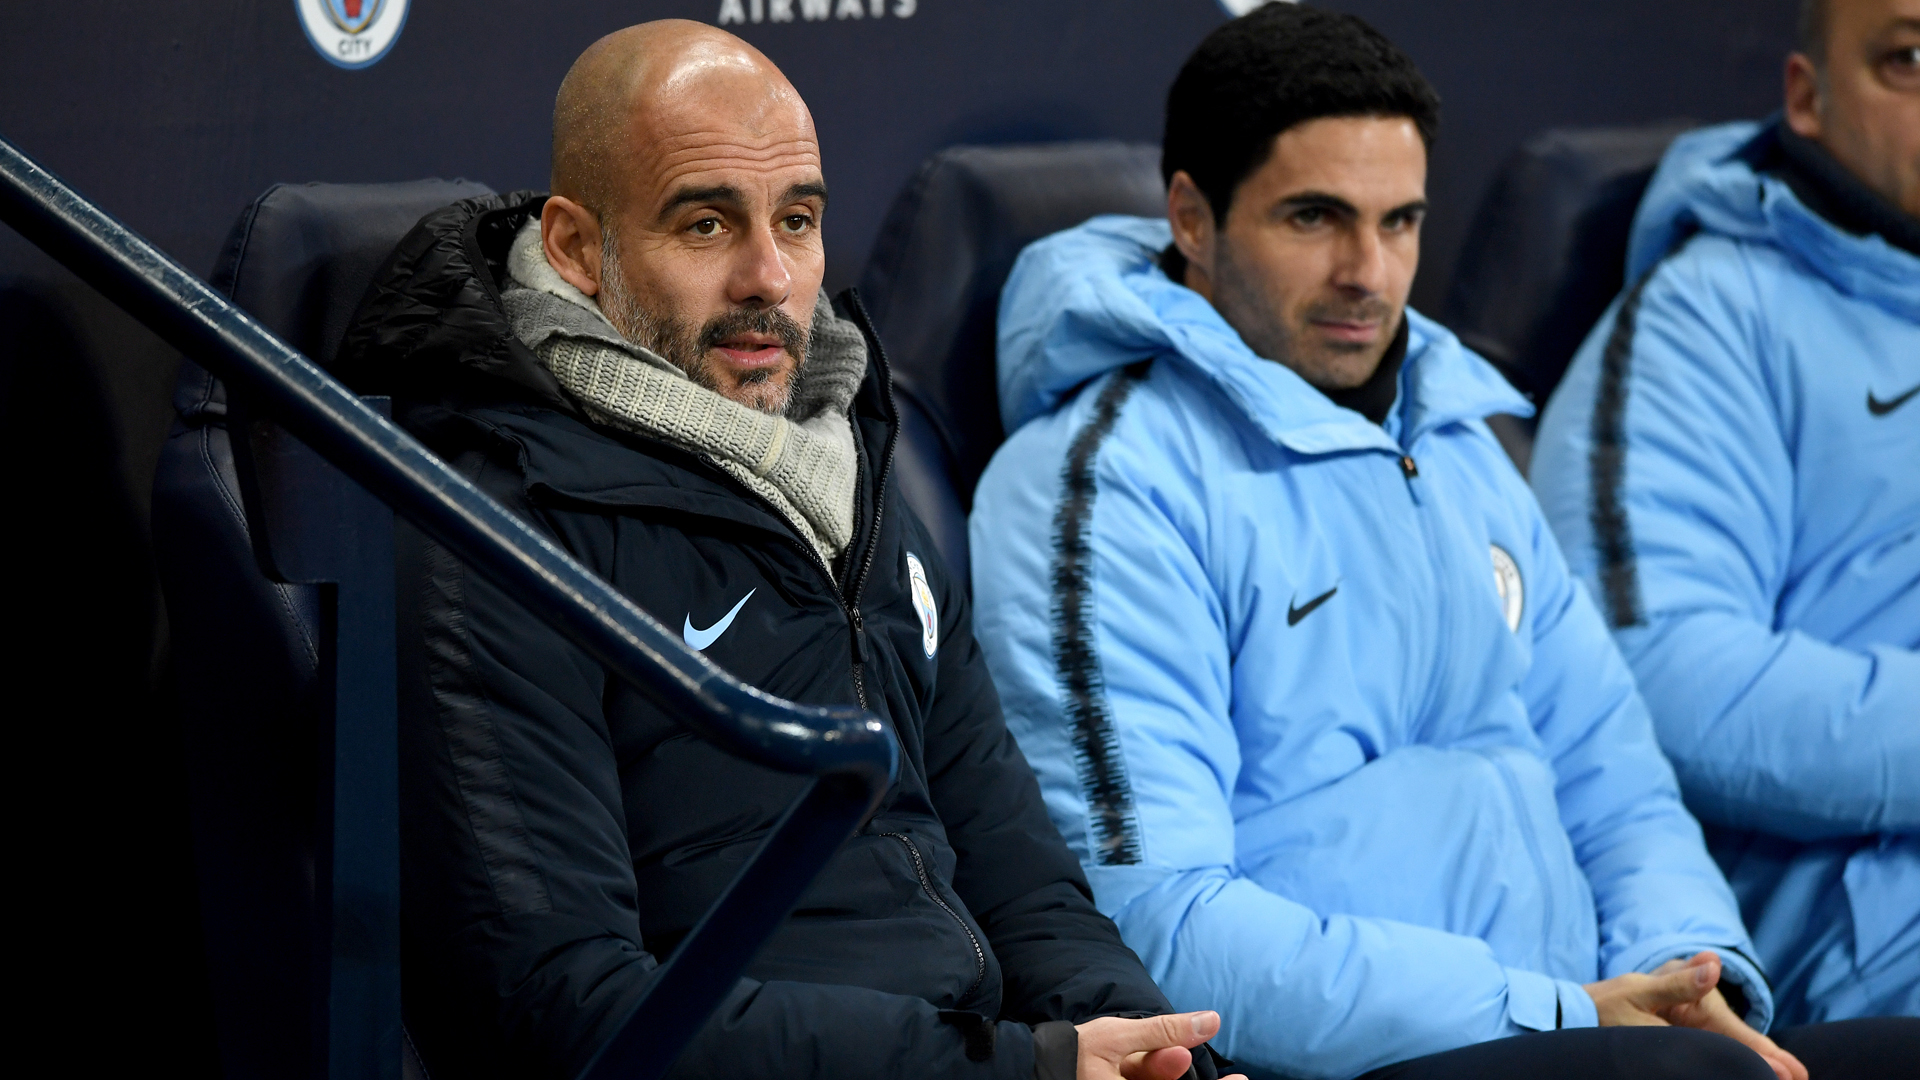 Guardiola wishes 'excellent coach' Arteta well at Arsenal